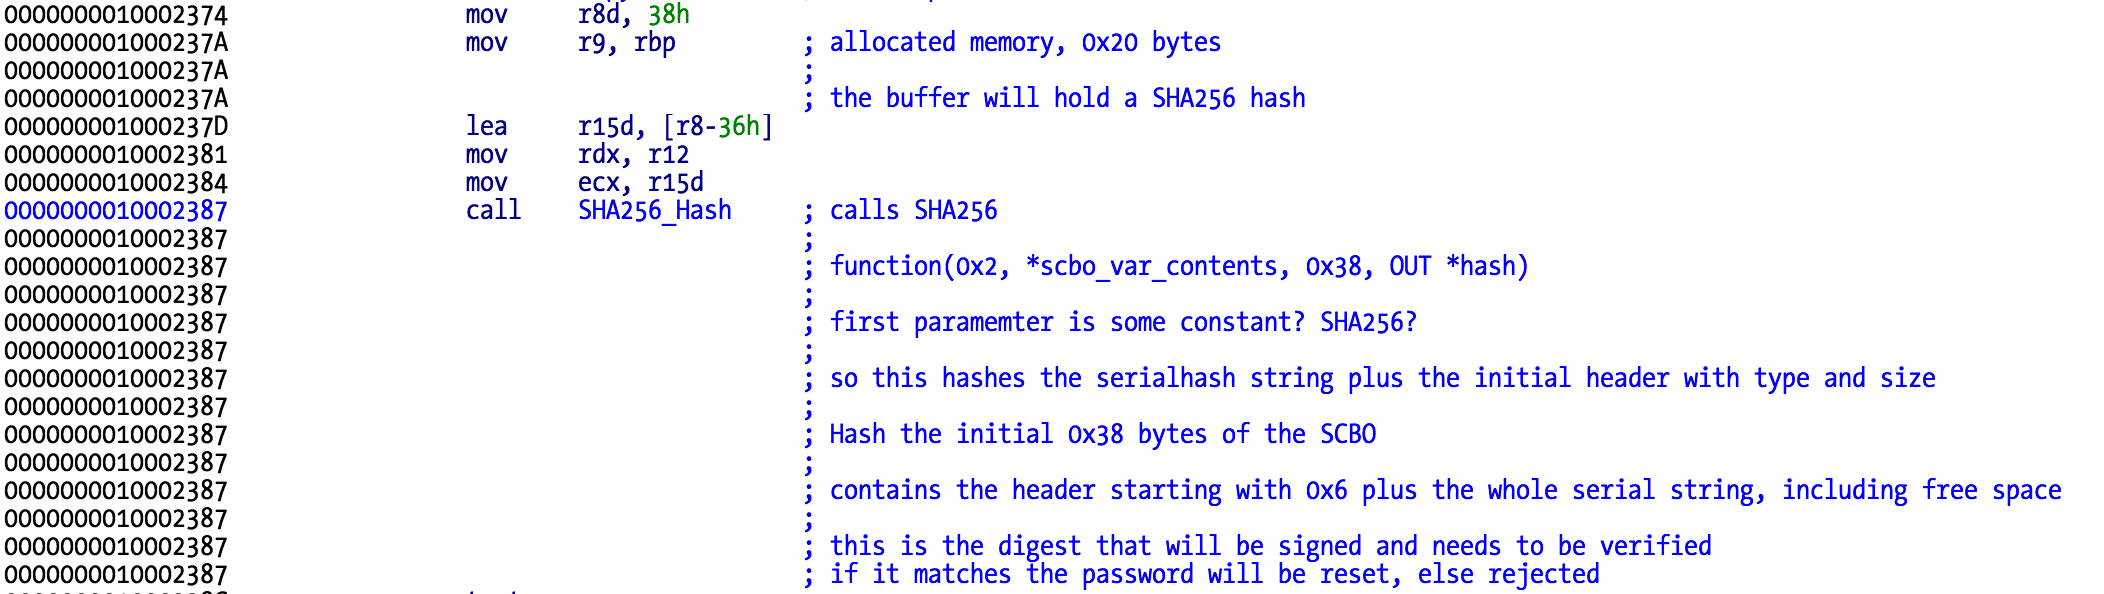 hash_scbo_contents